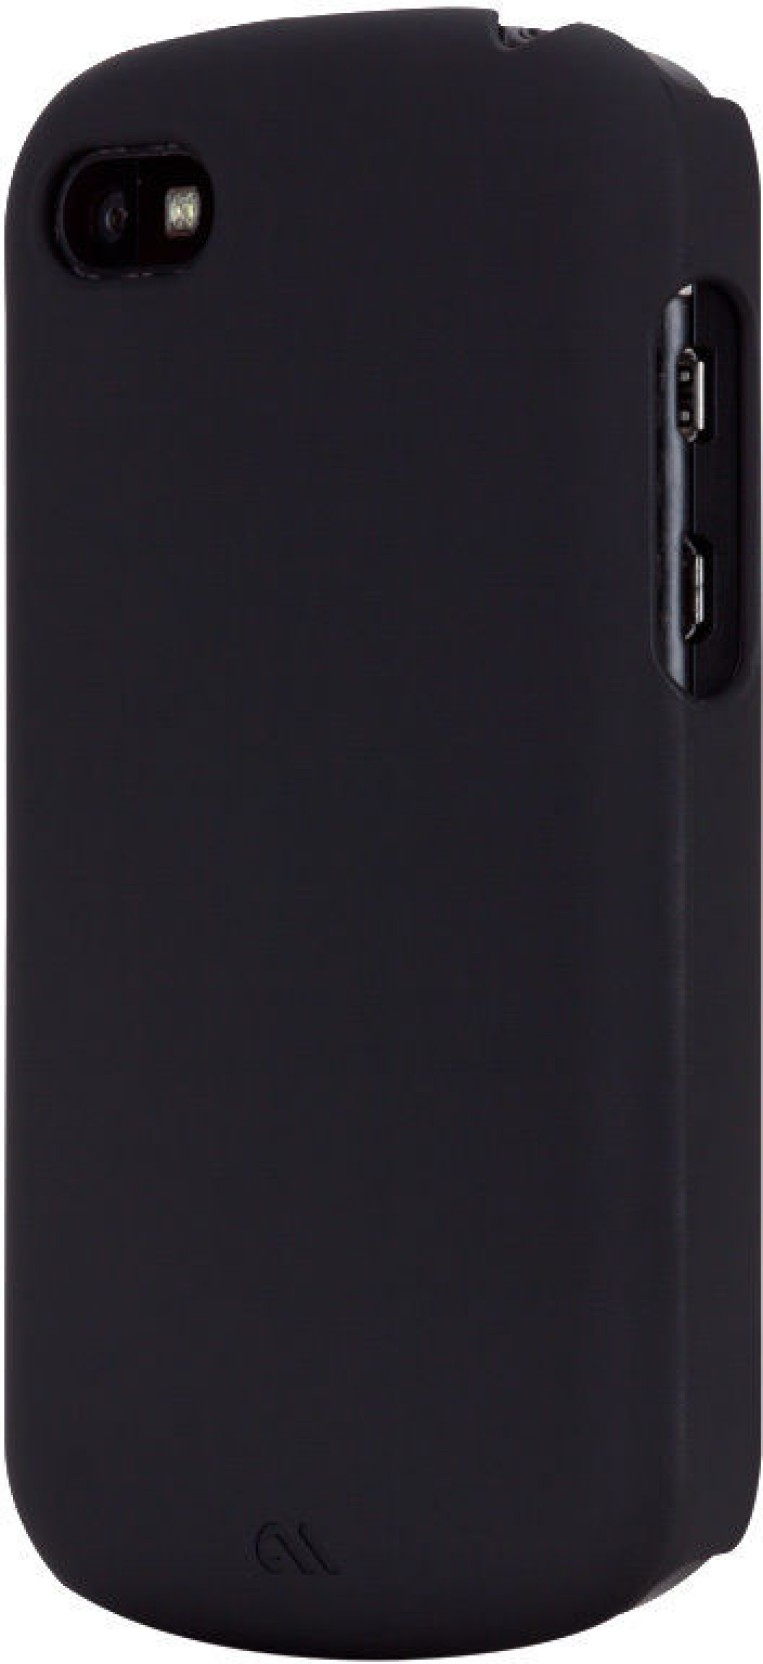 timeless design 58057 e1860 Case-Mate Back Cover for BlackBerry BlackBerry Q10